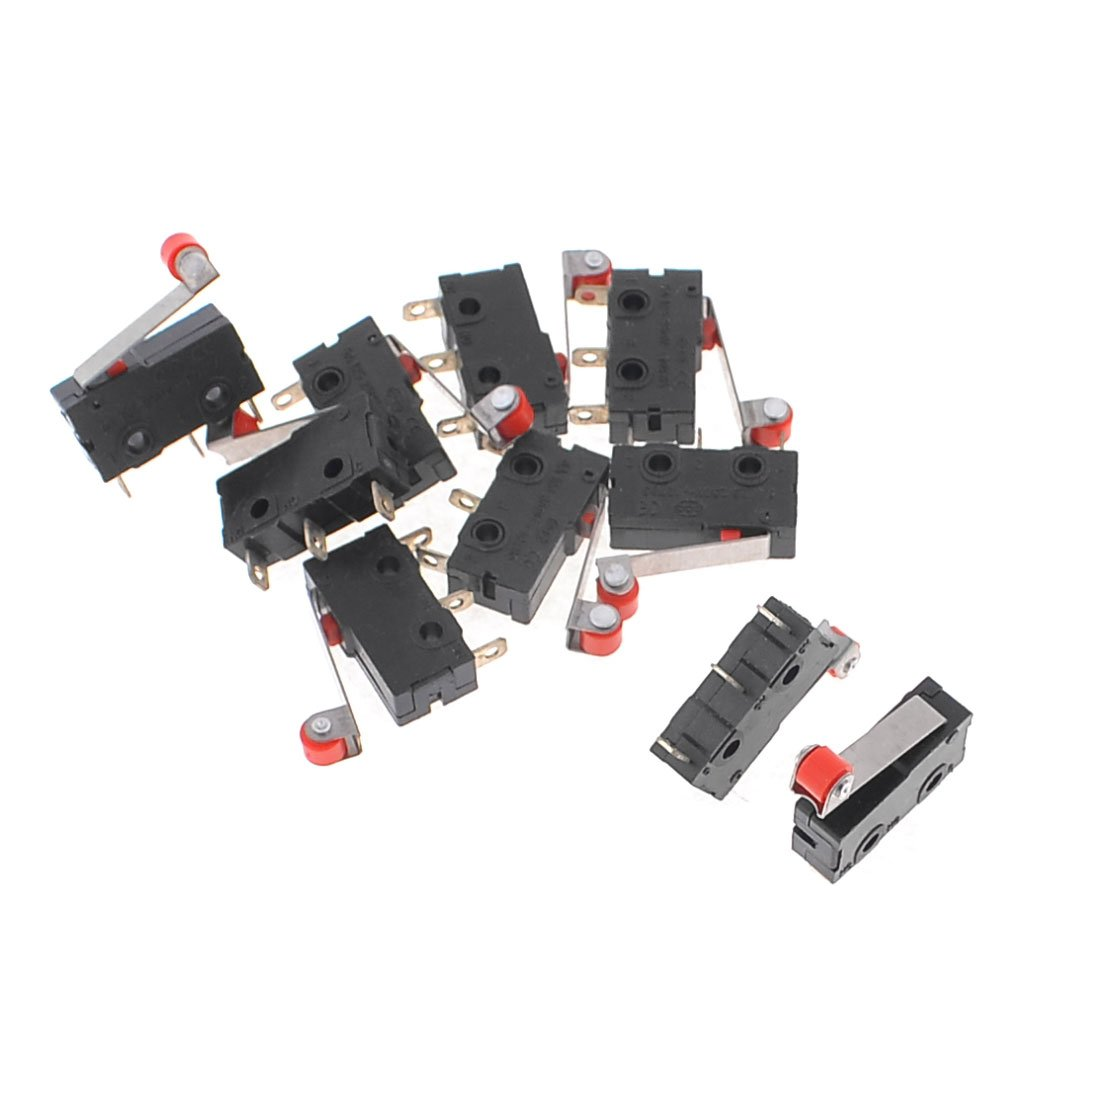 5A 125 250VAC Wheel Hinge Lever SPDT 3 Terminal Micro Switch 10 Pcs Sourcingmap a13112100ux0926